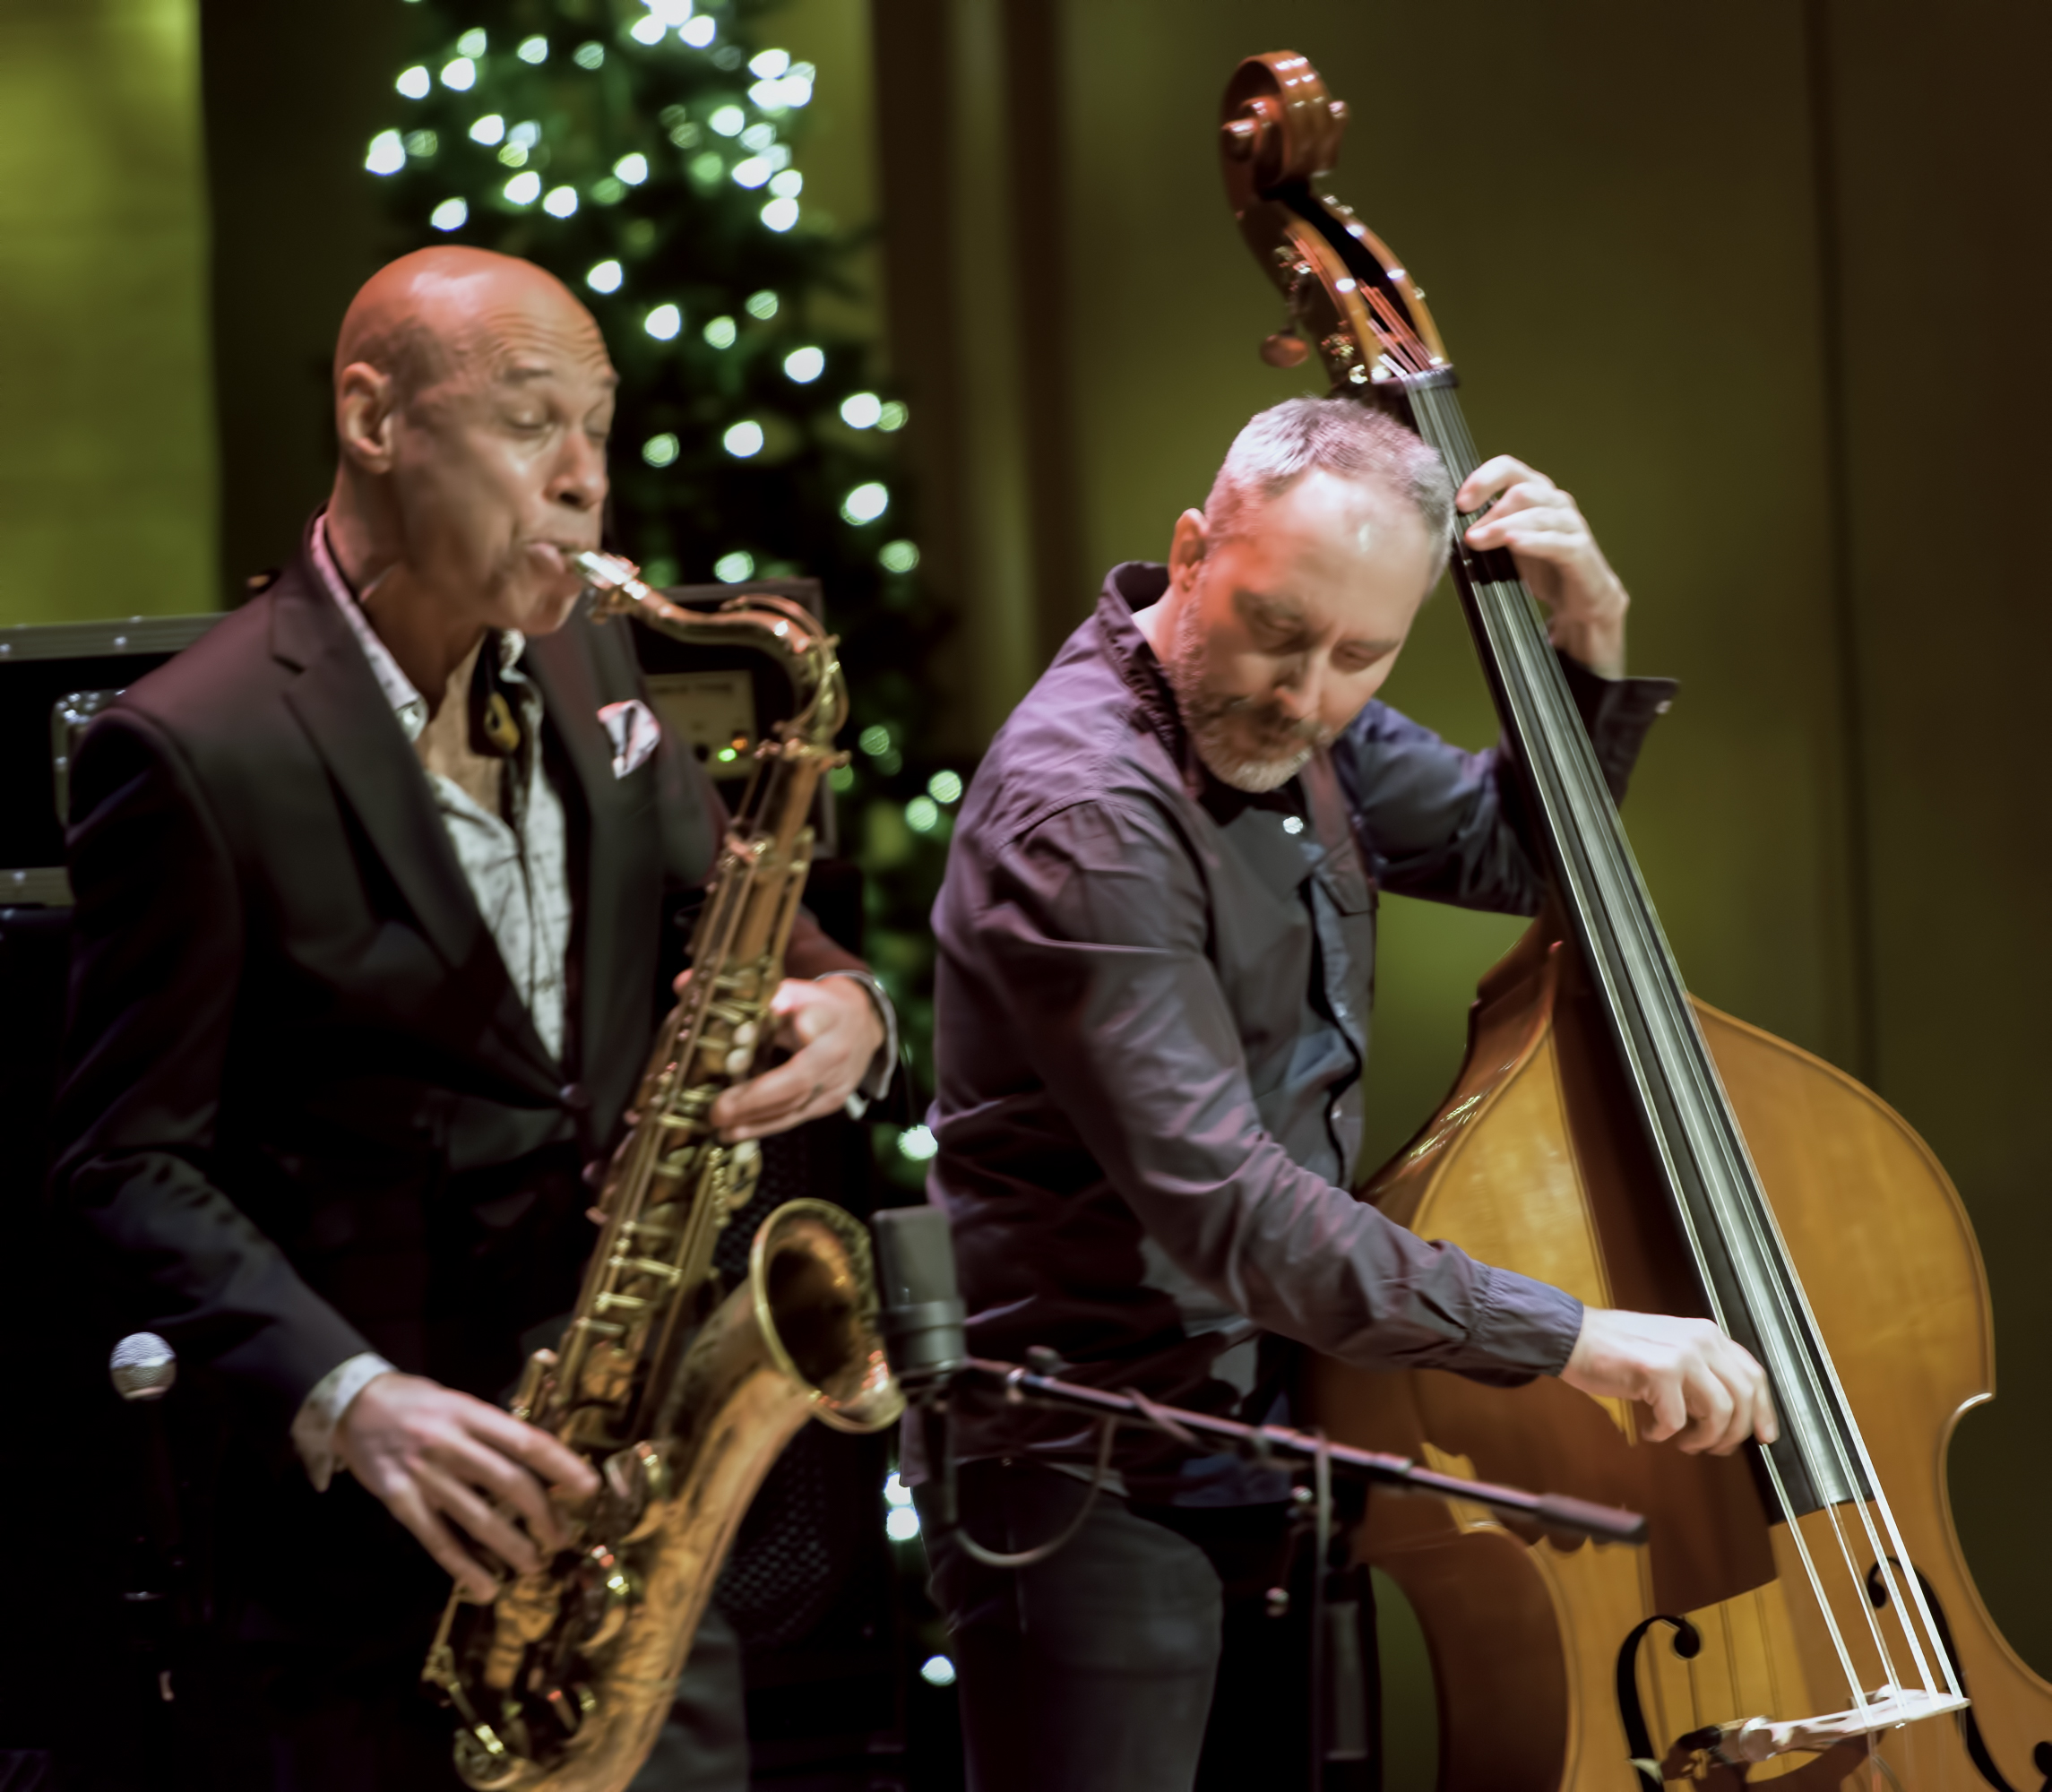 Joshua Redman And Reid Anderson With The Bad Plus At The Musical Instrument Museum (mim) Phoenix